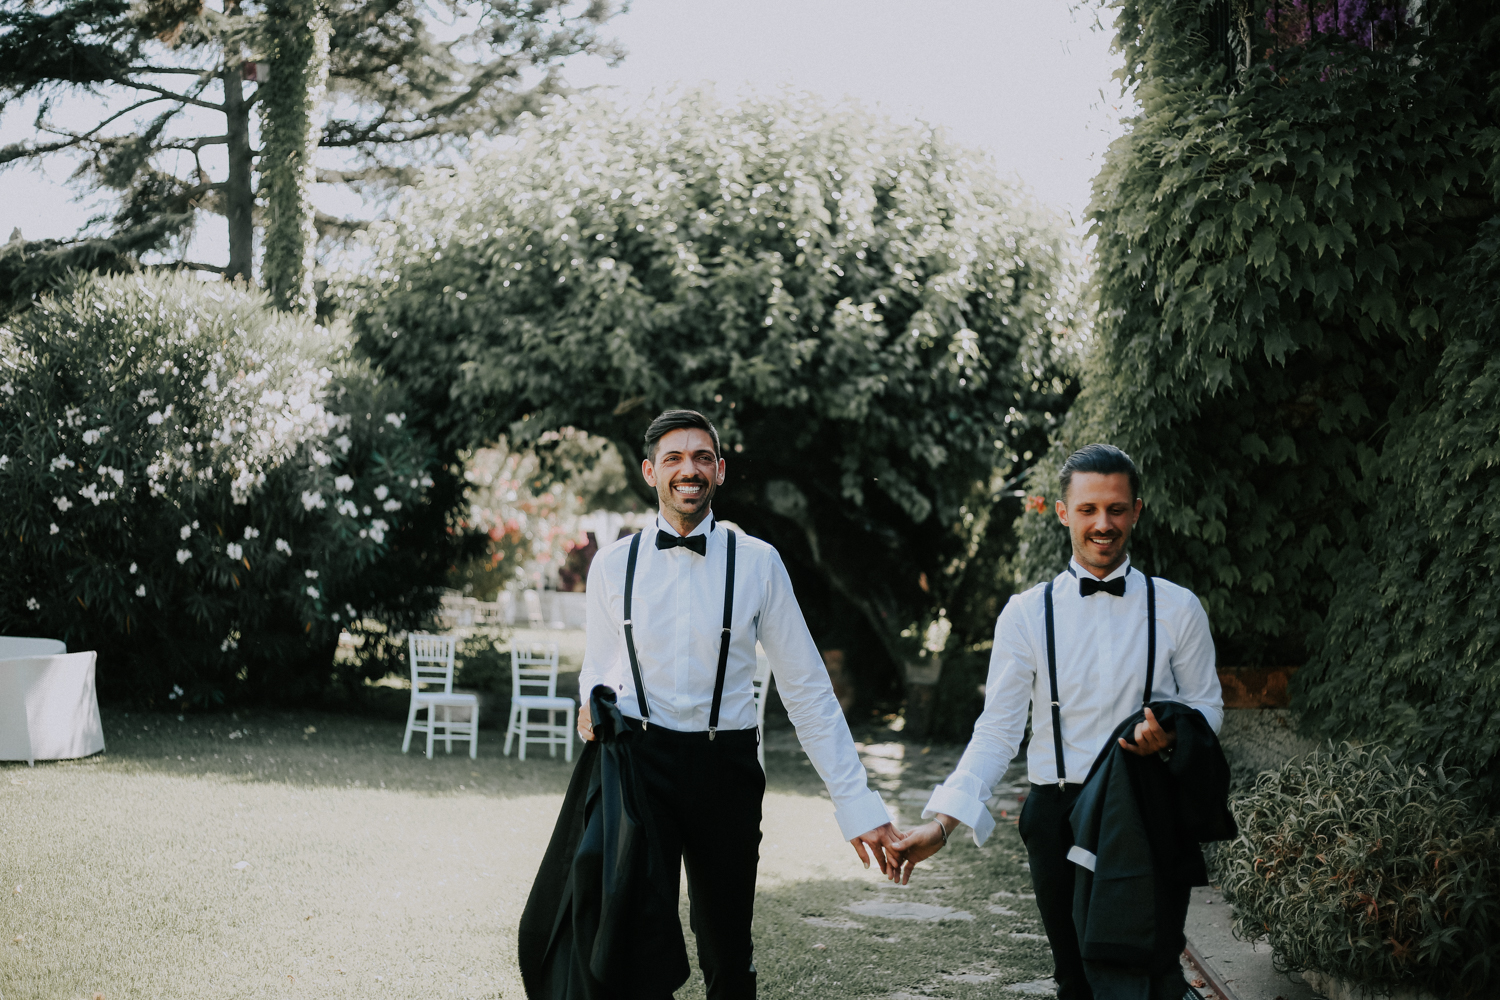 http://www.weddingamalfi.com/wp-content/uploads/Alessandro-and-Diego-grooms-wedding-dress.jpg